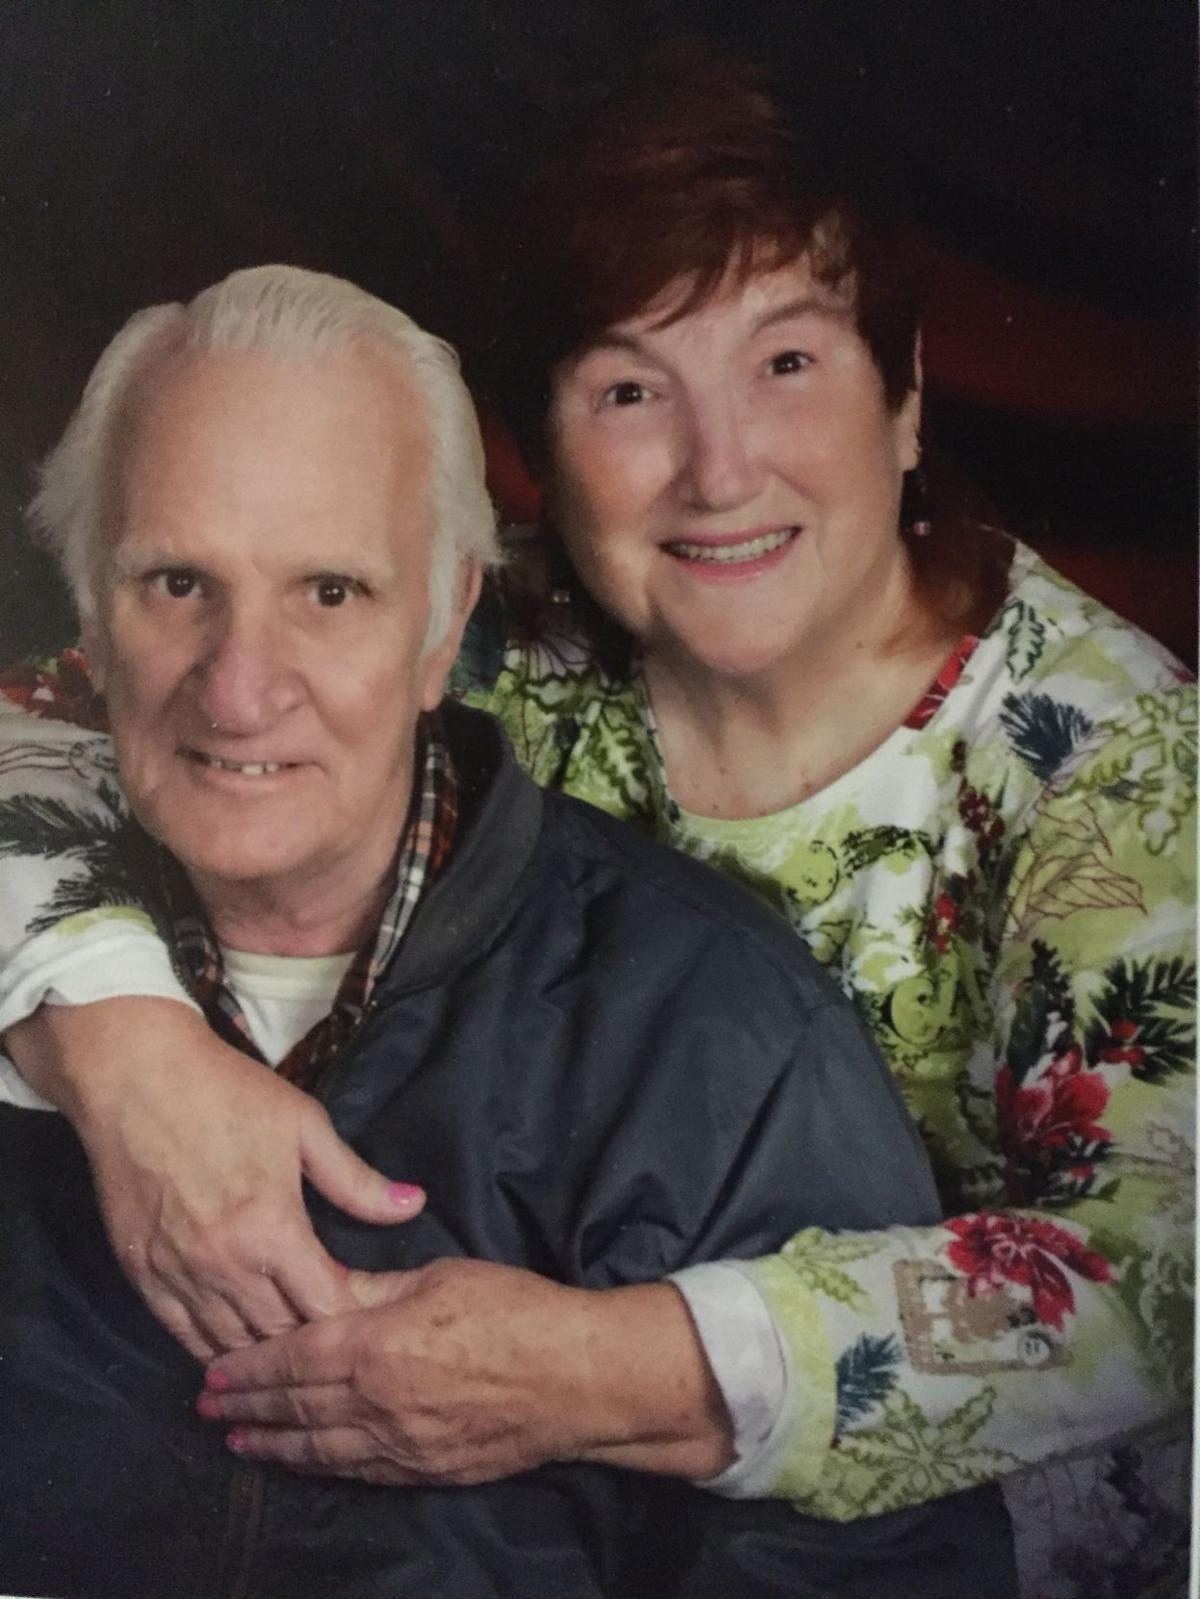 Celebrating 55 years of wedded bliss